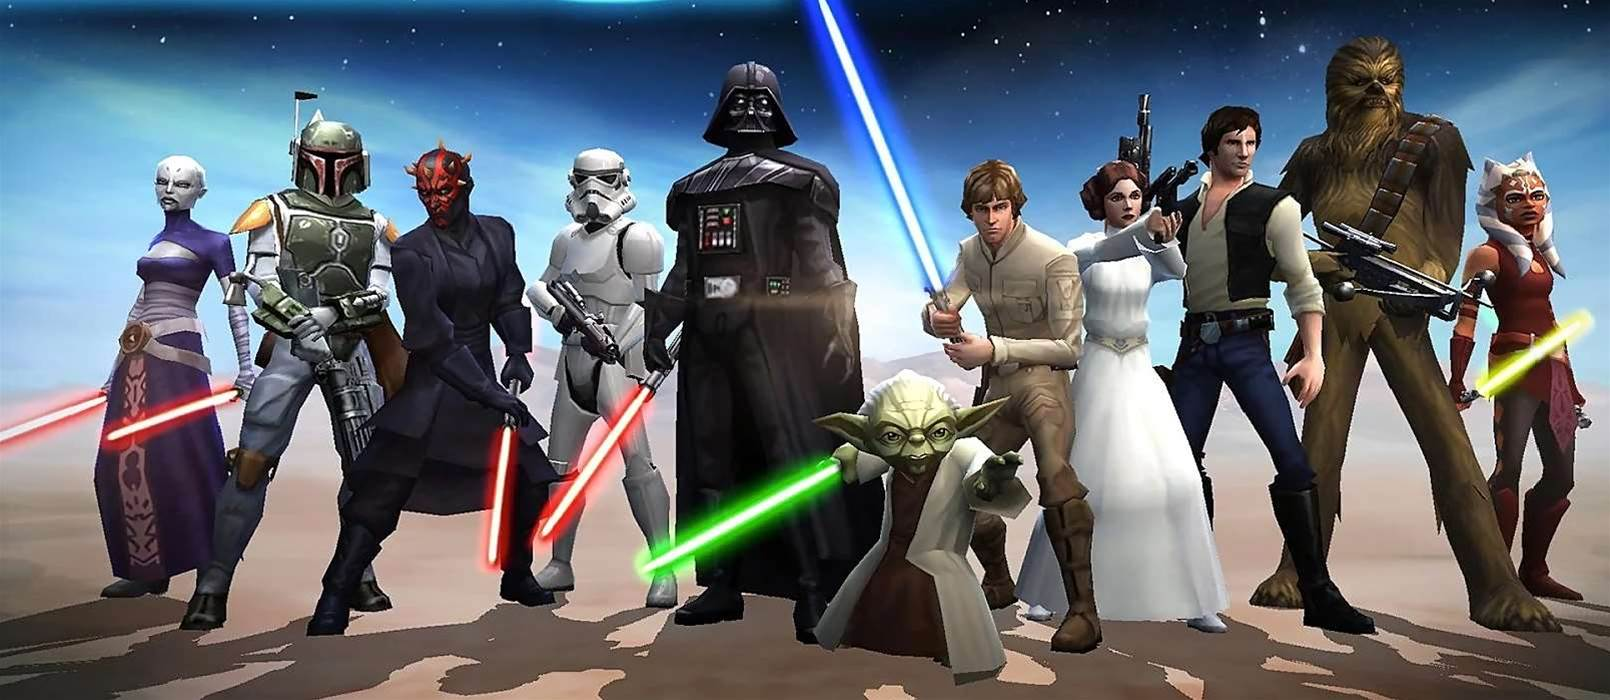 Star Wars Galaxy of Heroes released on mobile devices